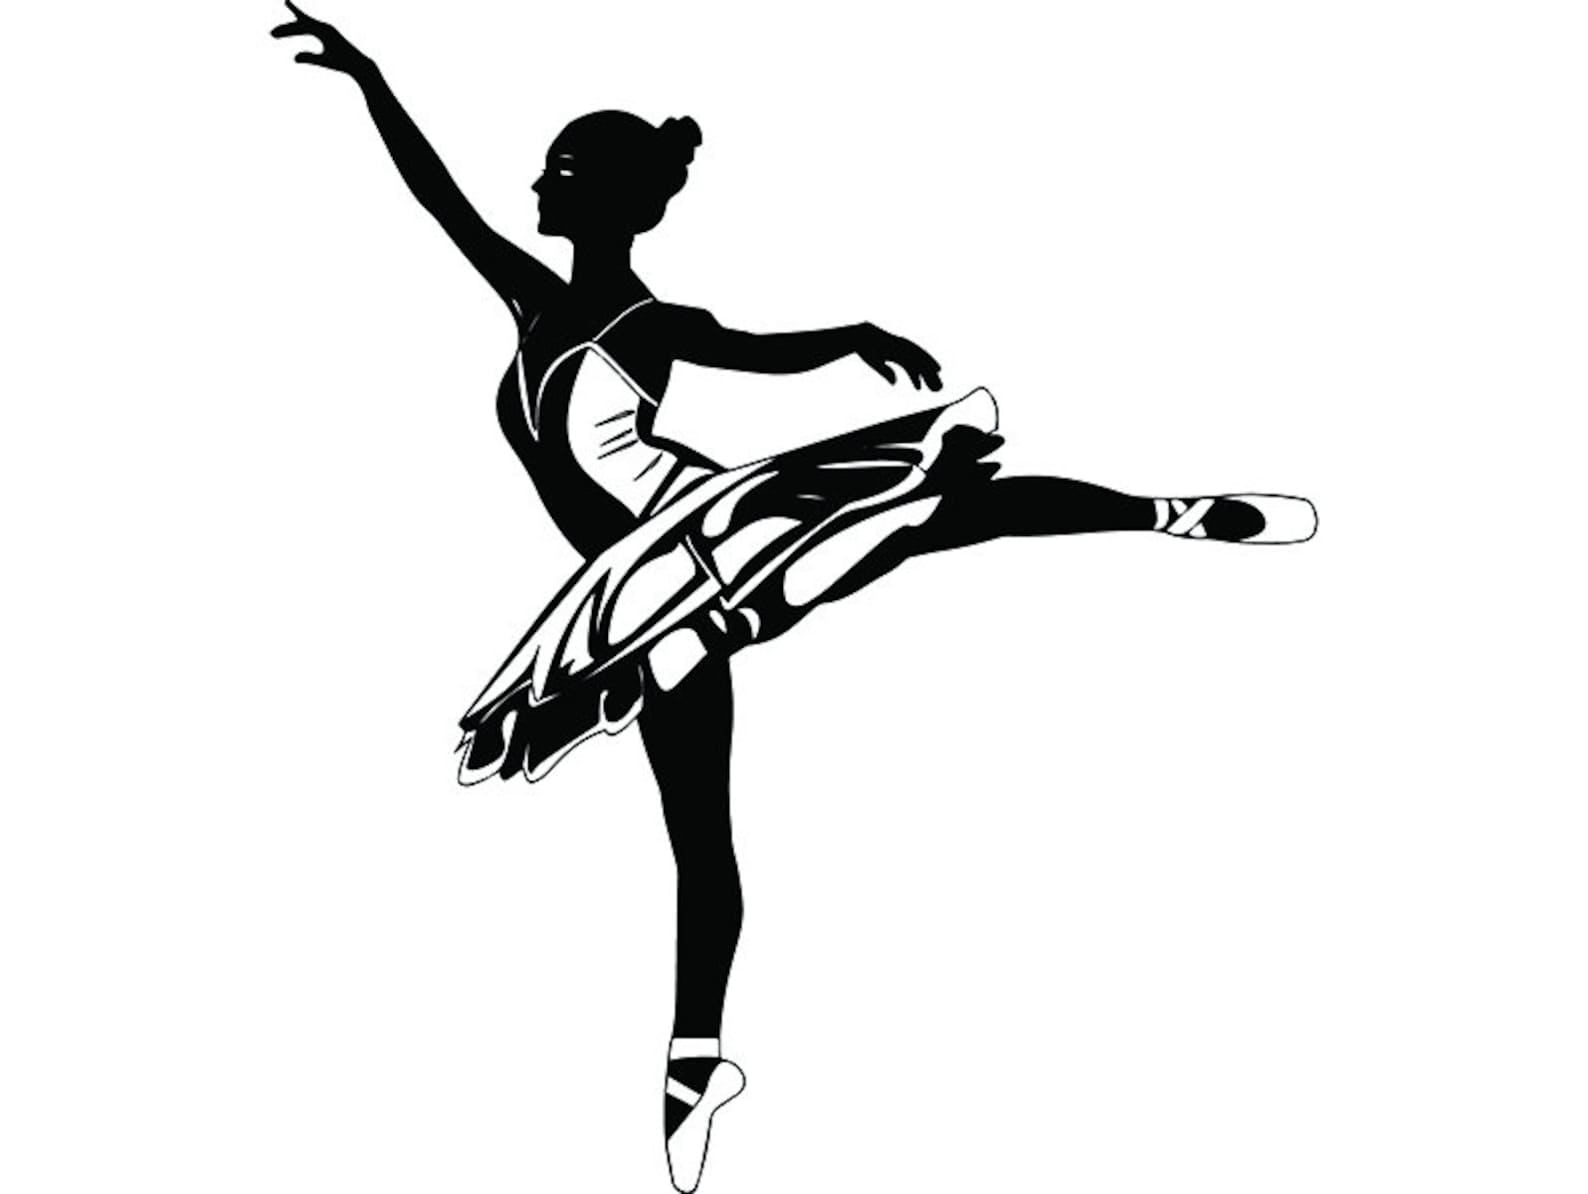 ballet dancer #2 ballerina music dance performance dancing dancer classical grace logo .svg .png clipart vector cricut cut cutti